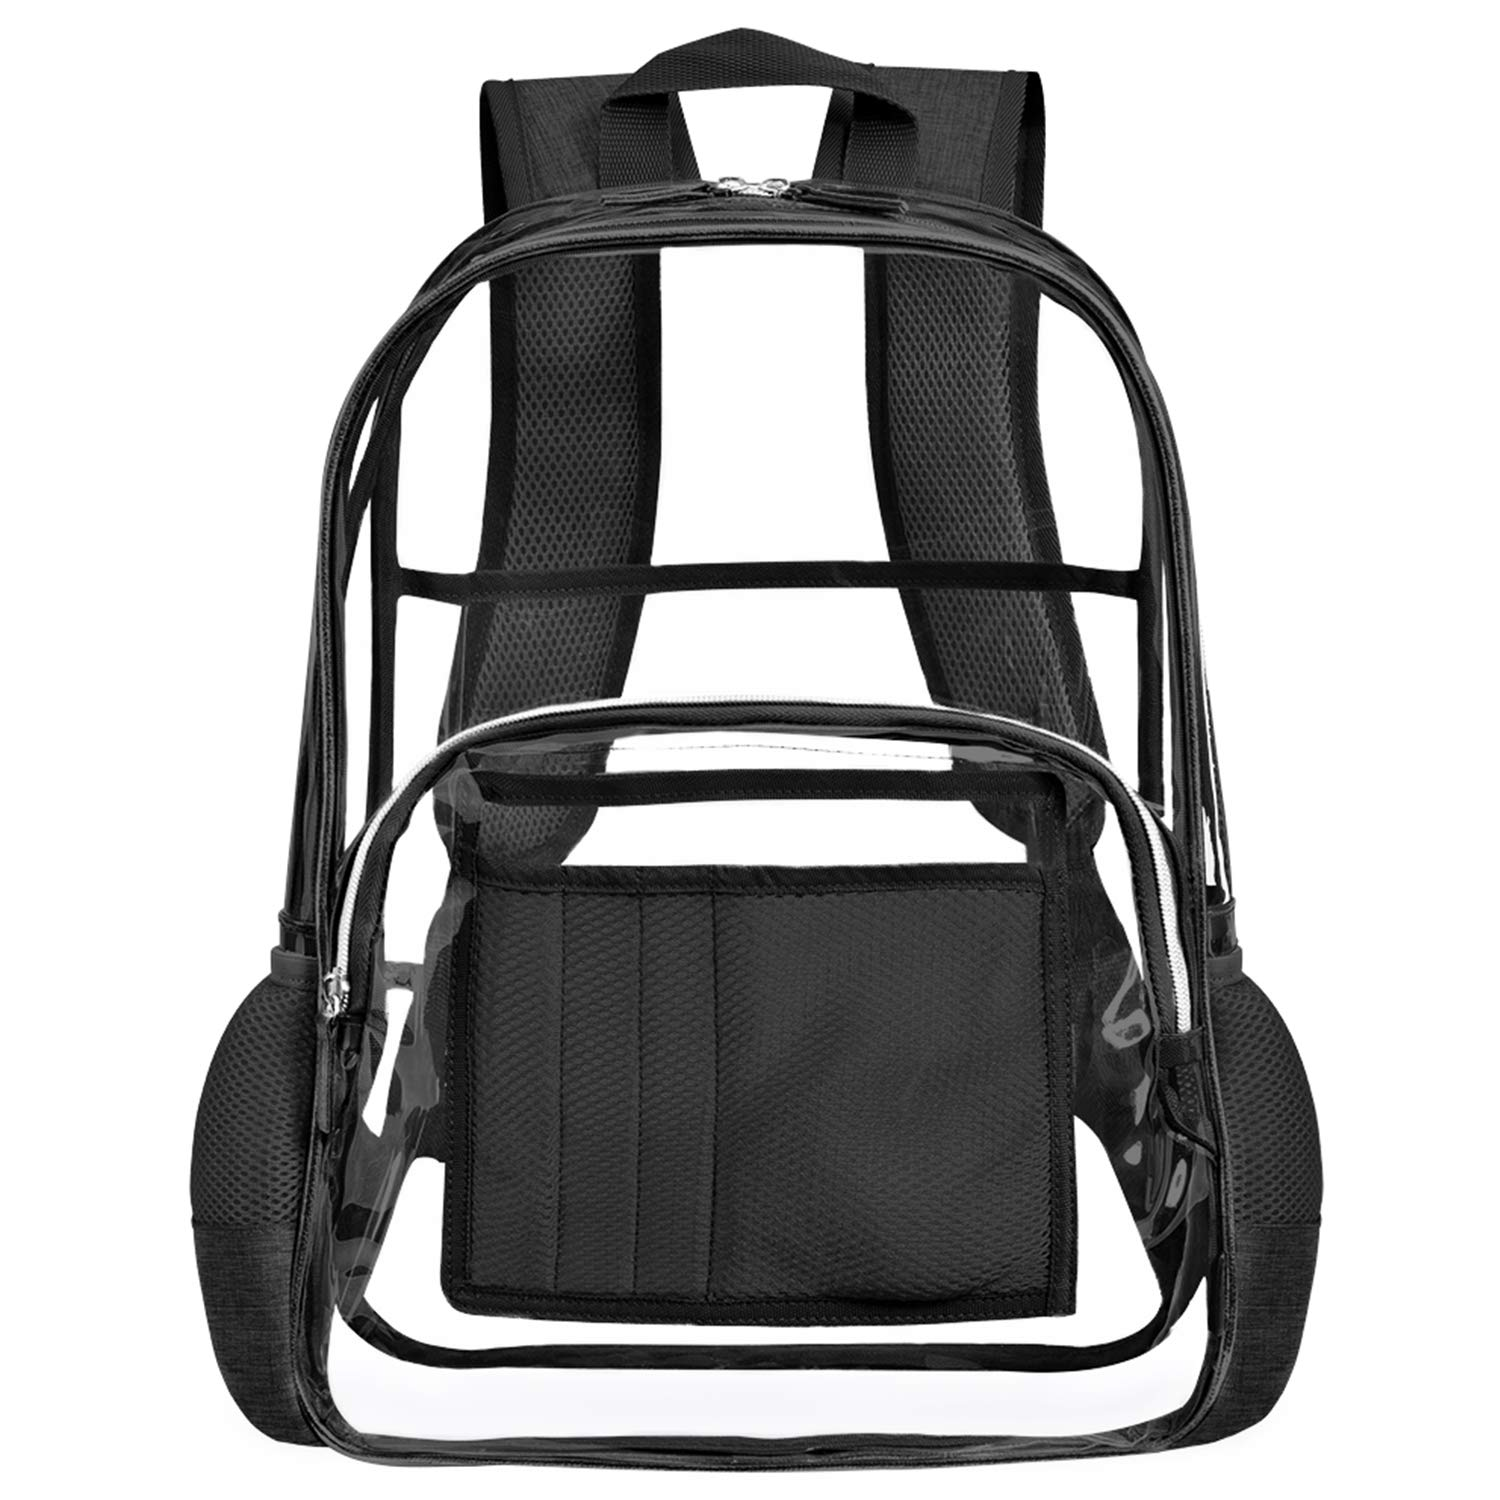 Clear Backpack for Women and Men Fit 15.6 inch Laptop See Through College School Bag for Student Cute Bookbag for Kids Girls Boys Transparent PVC Knapsack Daypack for Travel Work Gym Hiking Black